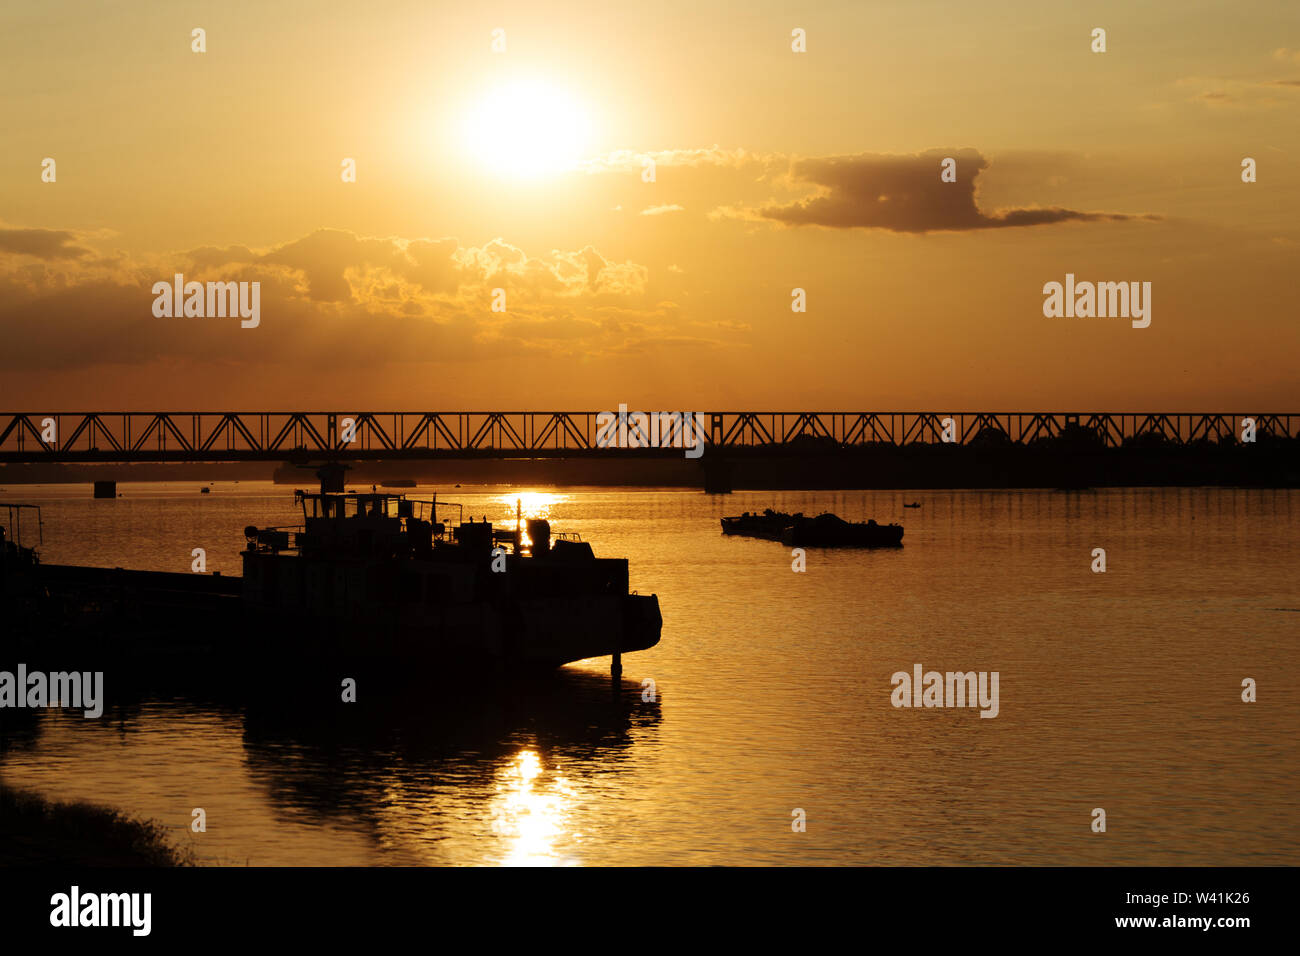 Beautiful Golden Sunset with Ships and Bridge Silhouettes At The River Danube in Belgrade Serbia - Stock Image